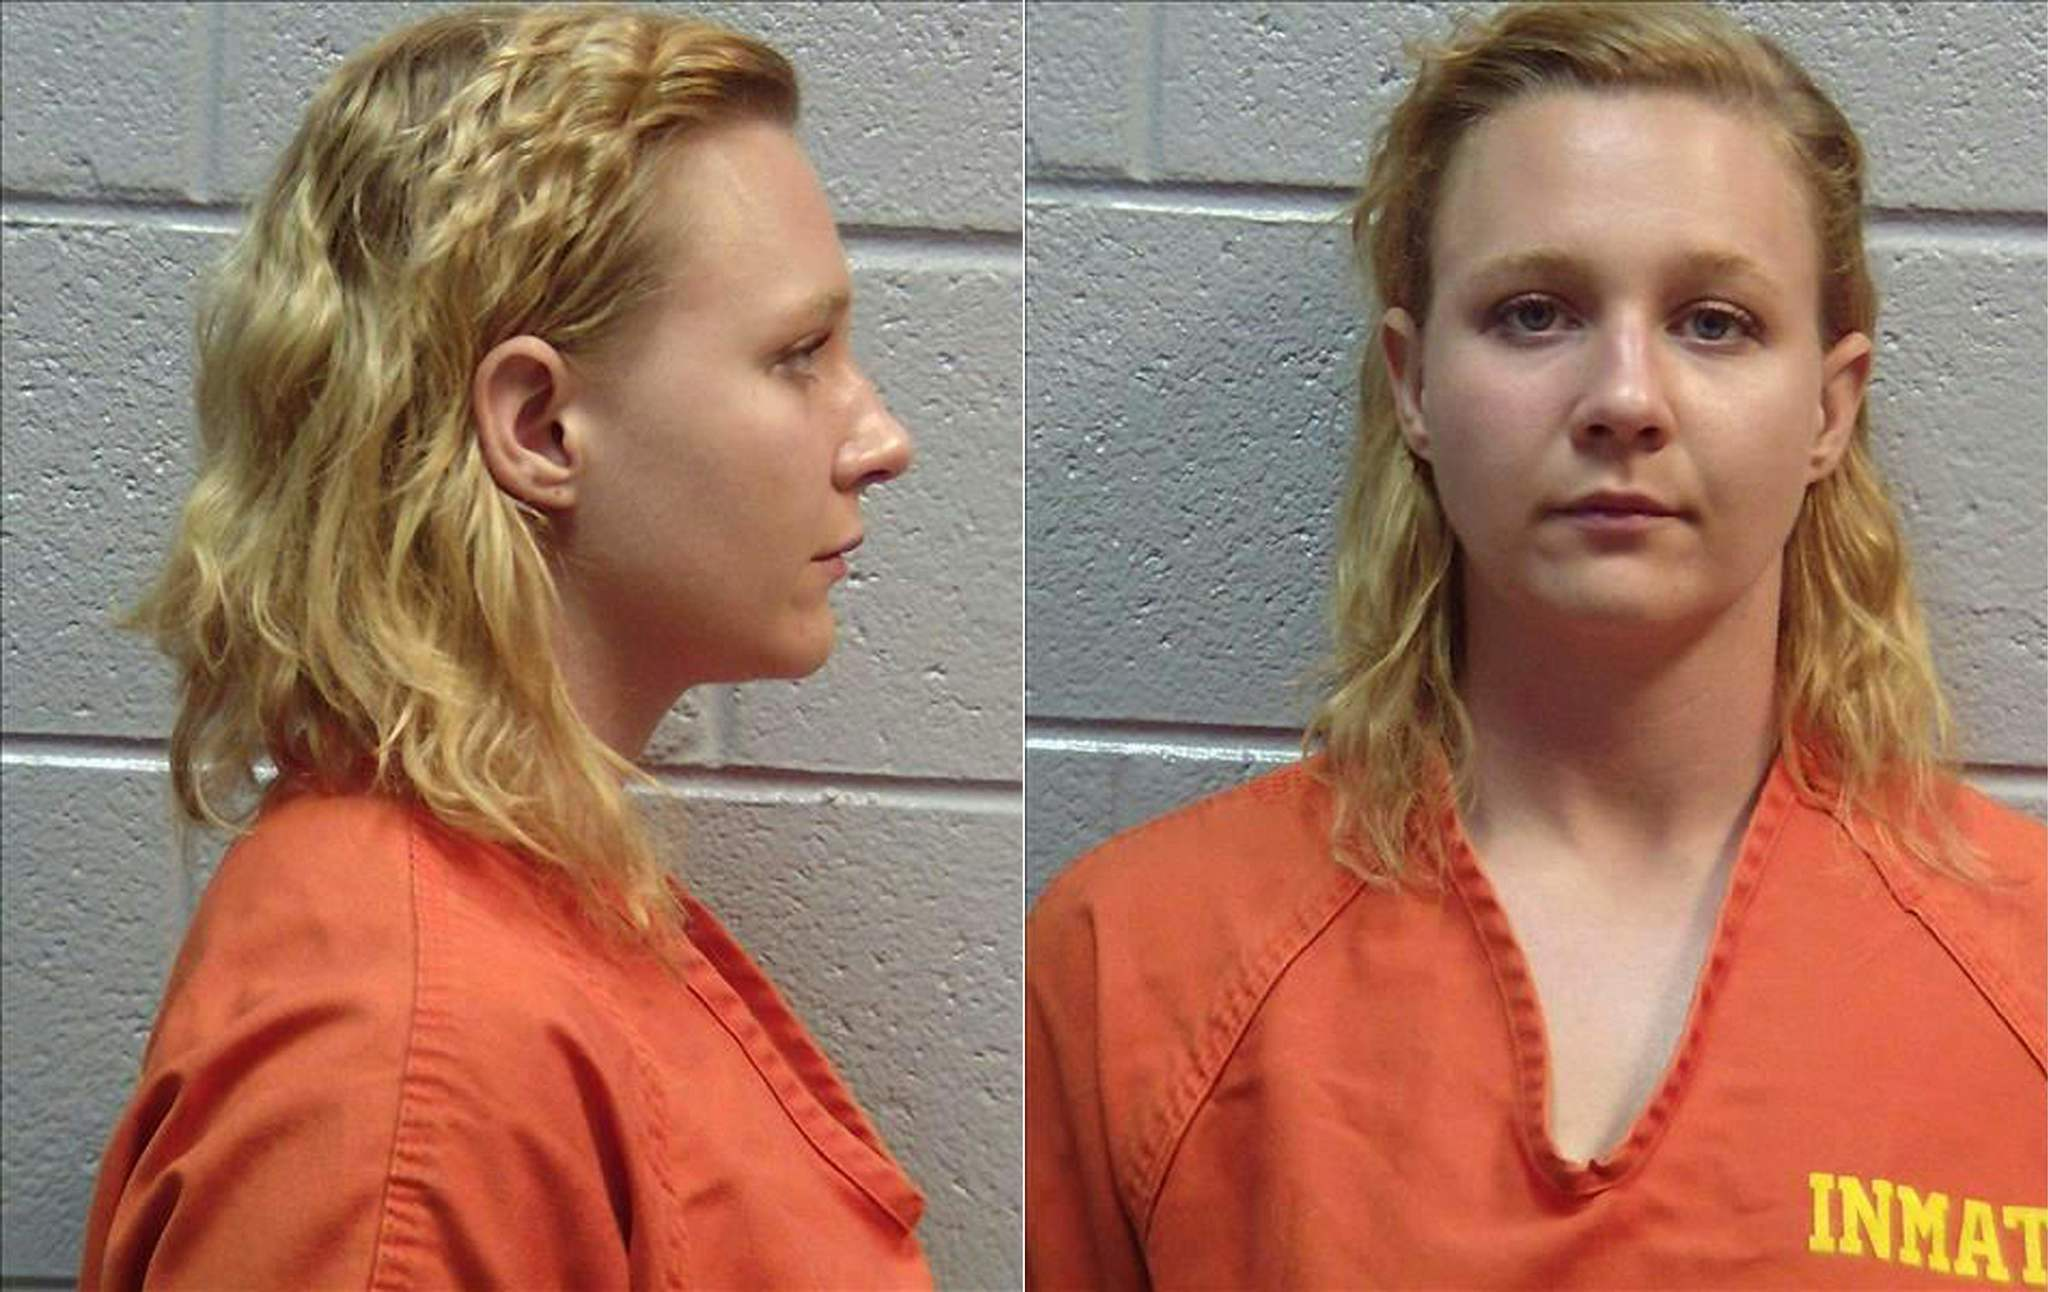 Reality Winner will plead guilty to Espionage Act charges for leaking NSA doc on Russia election hack